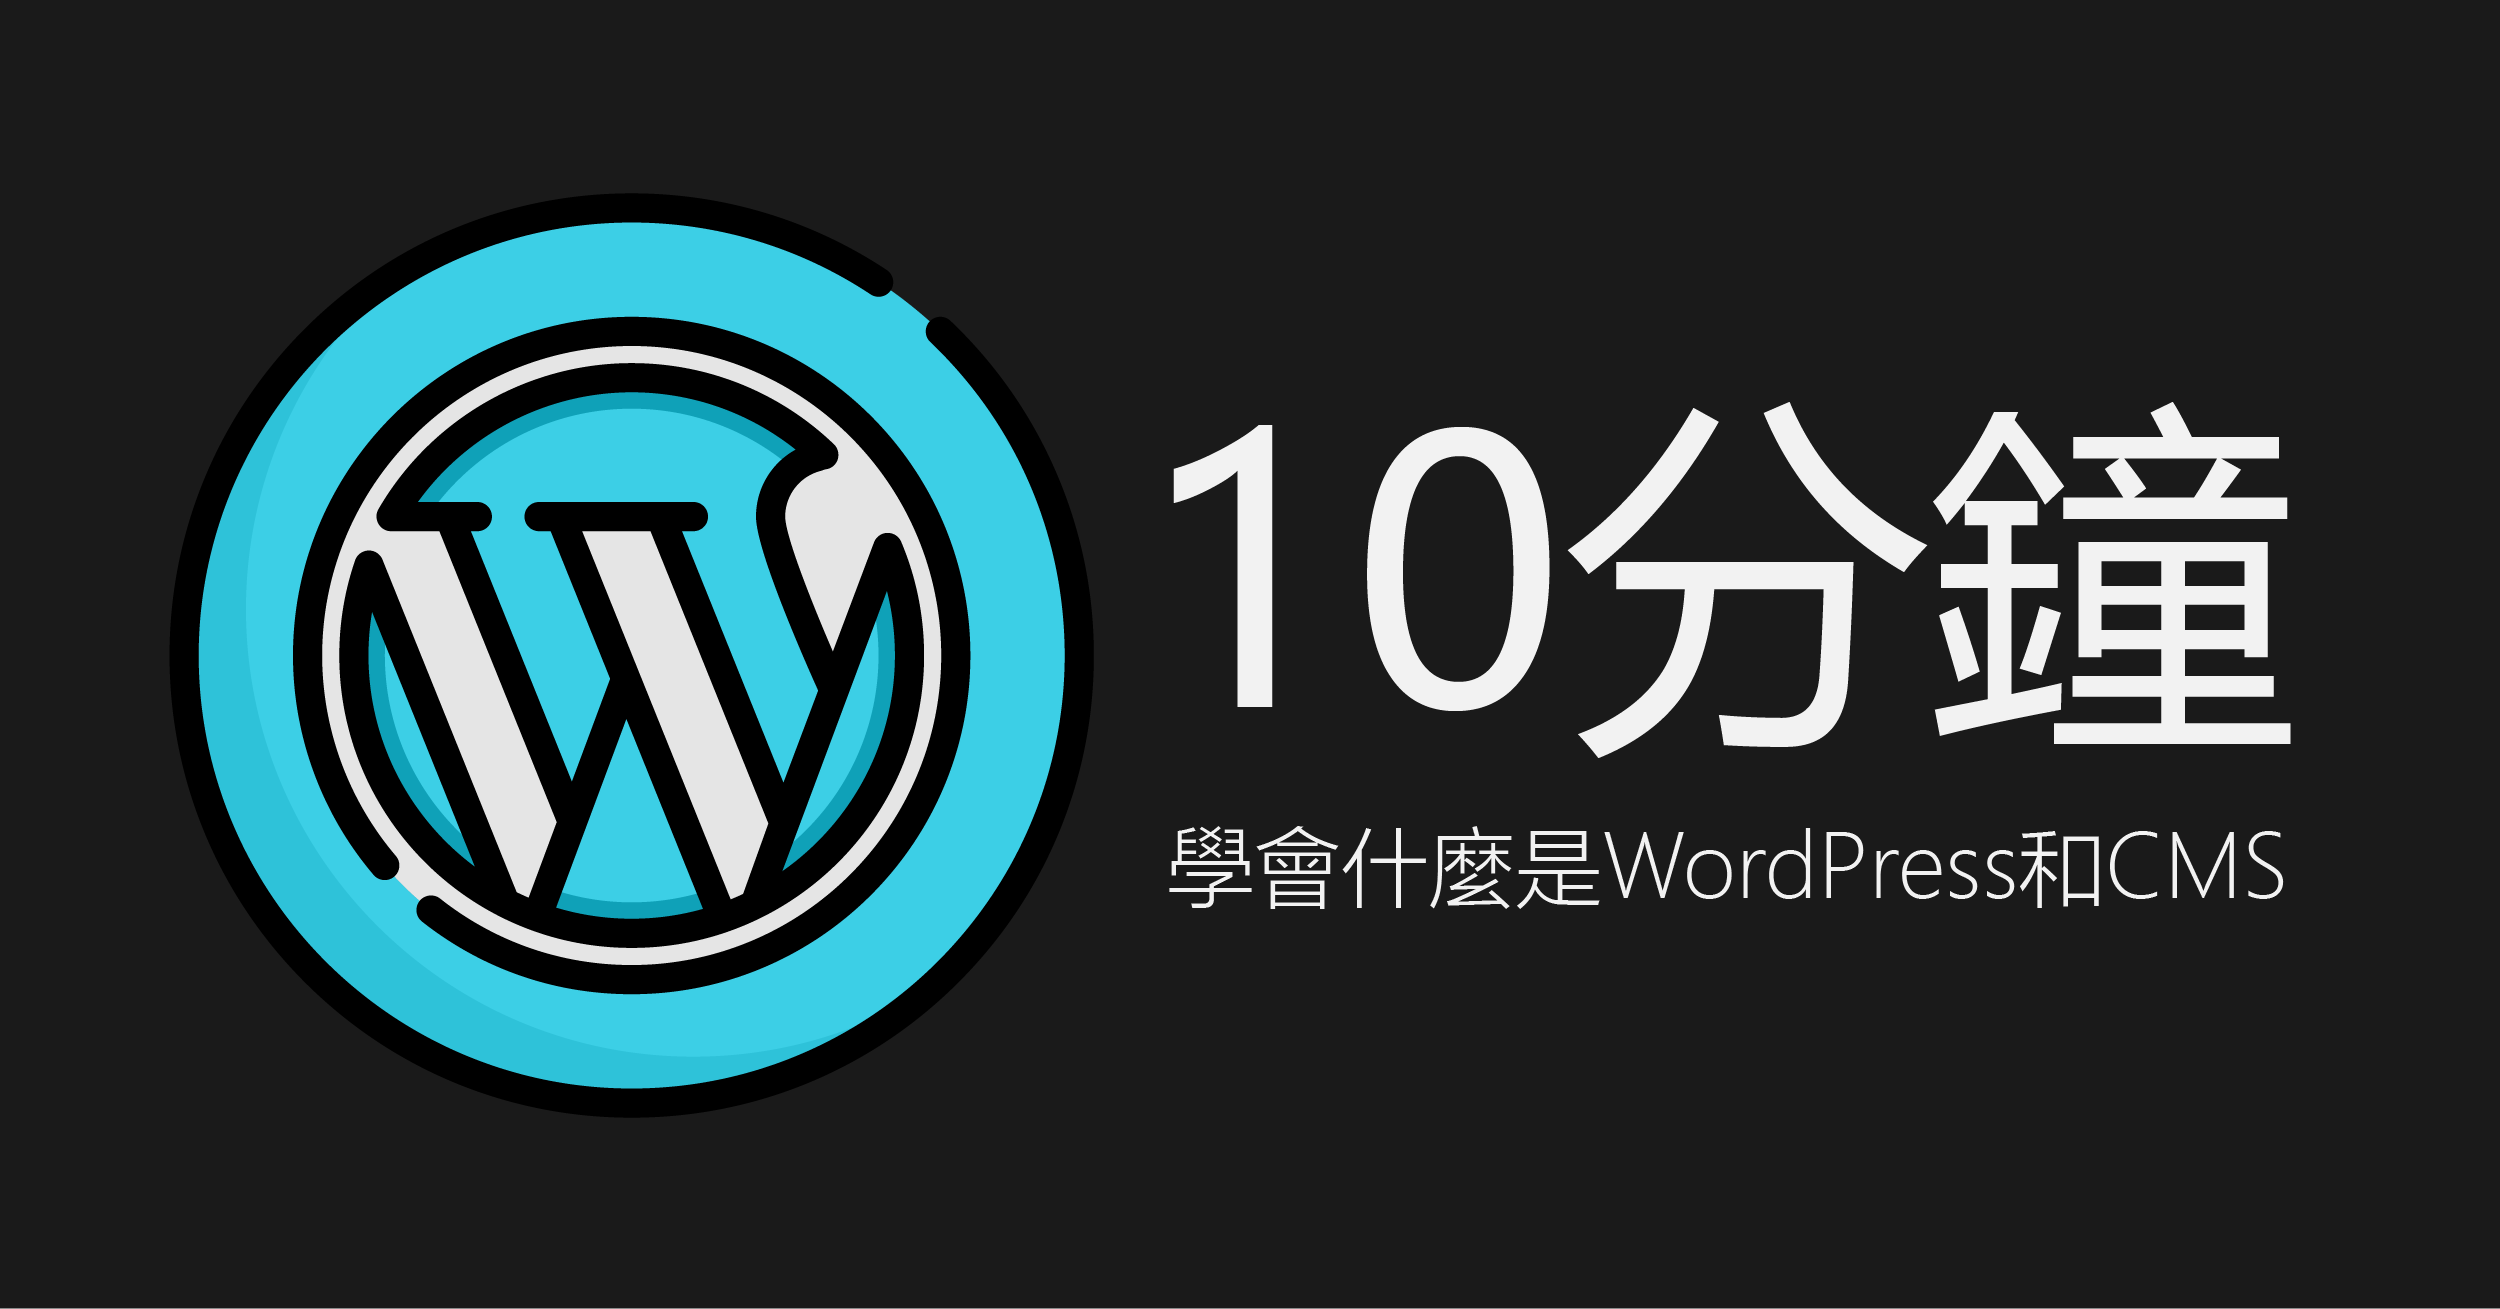 Thumbnail of a blog post explaining what is content management system and WordPress